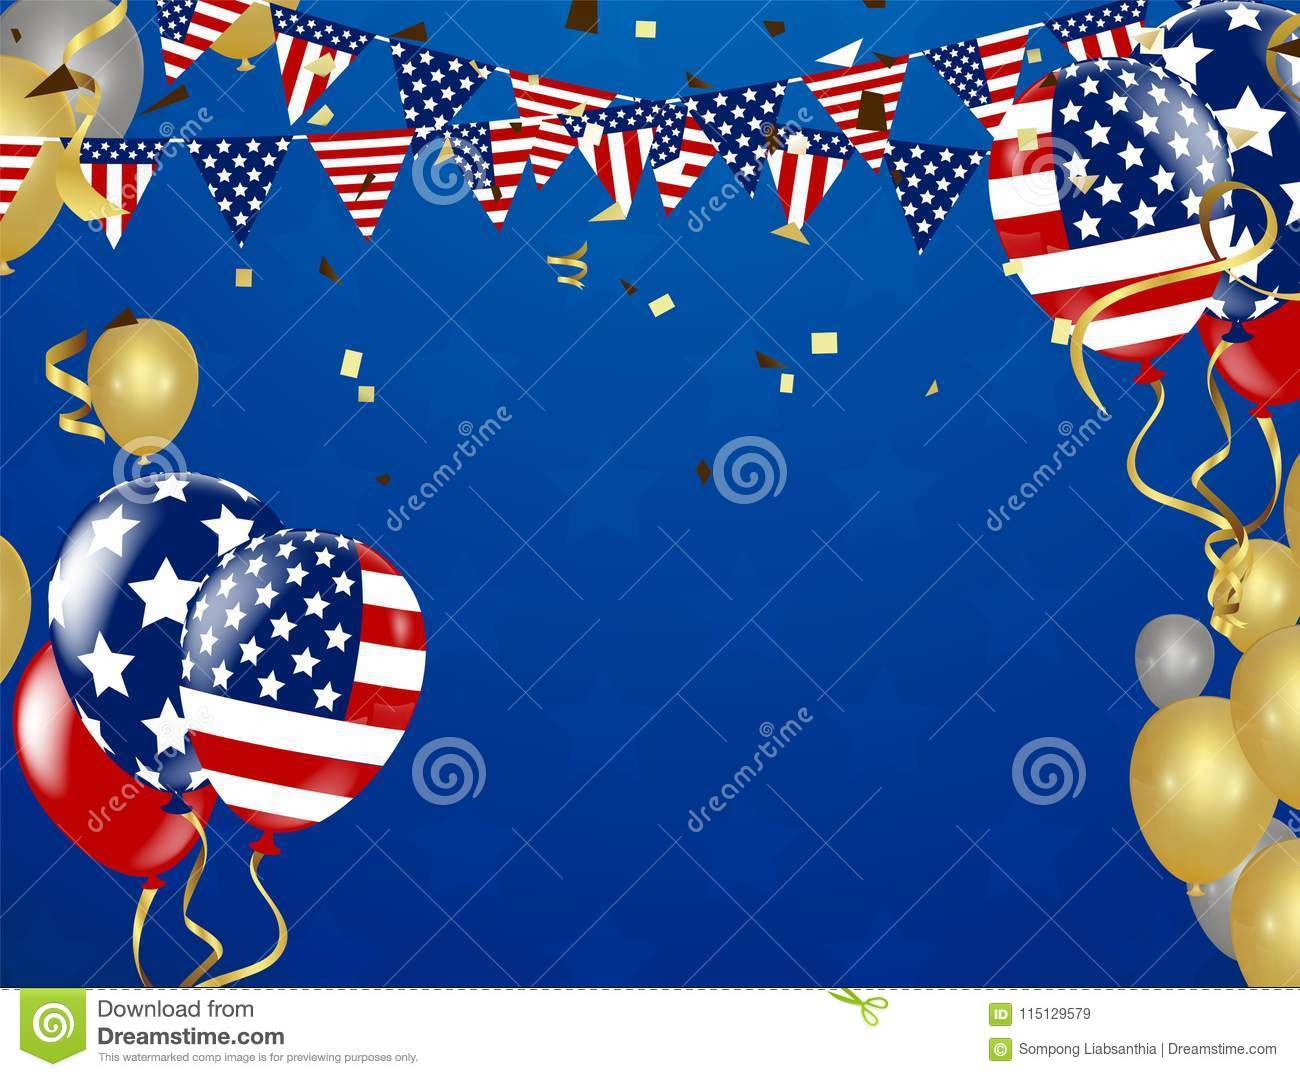 327806df92a American President Day background of stars flying. Holiday confetti in US  flag colors for President